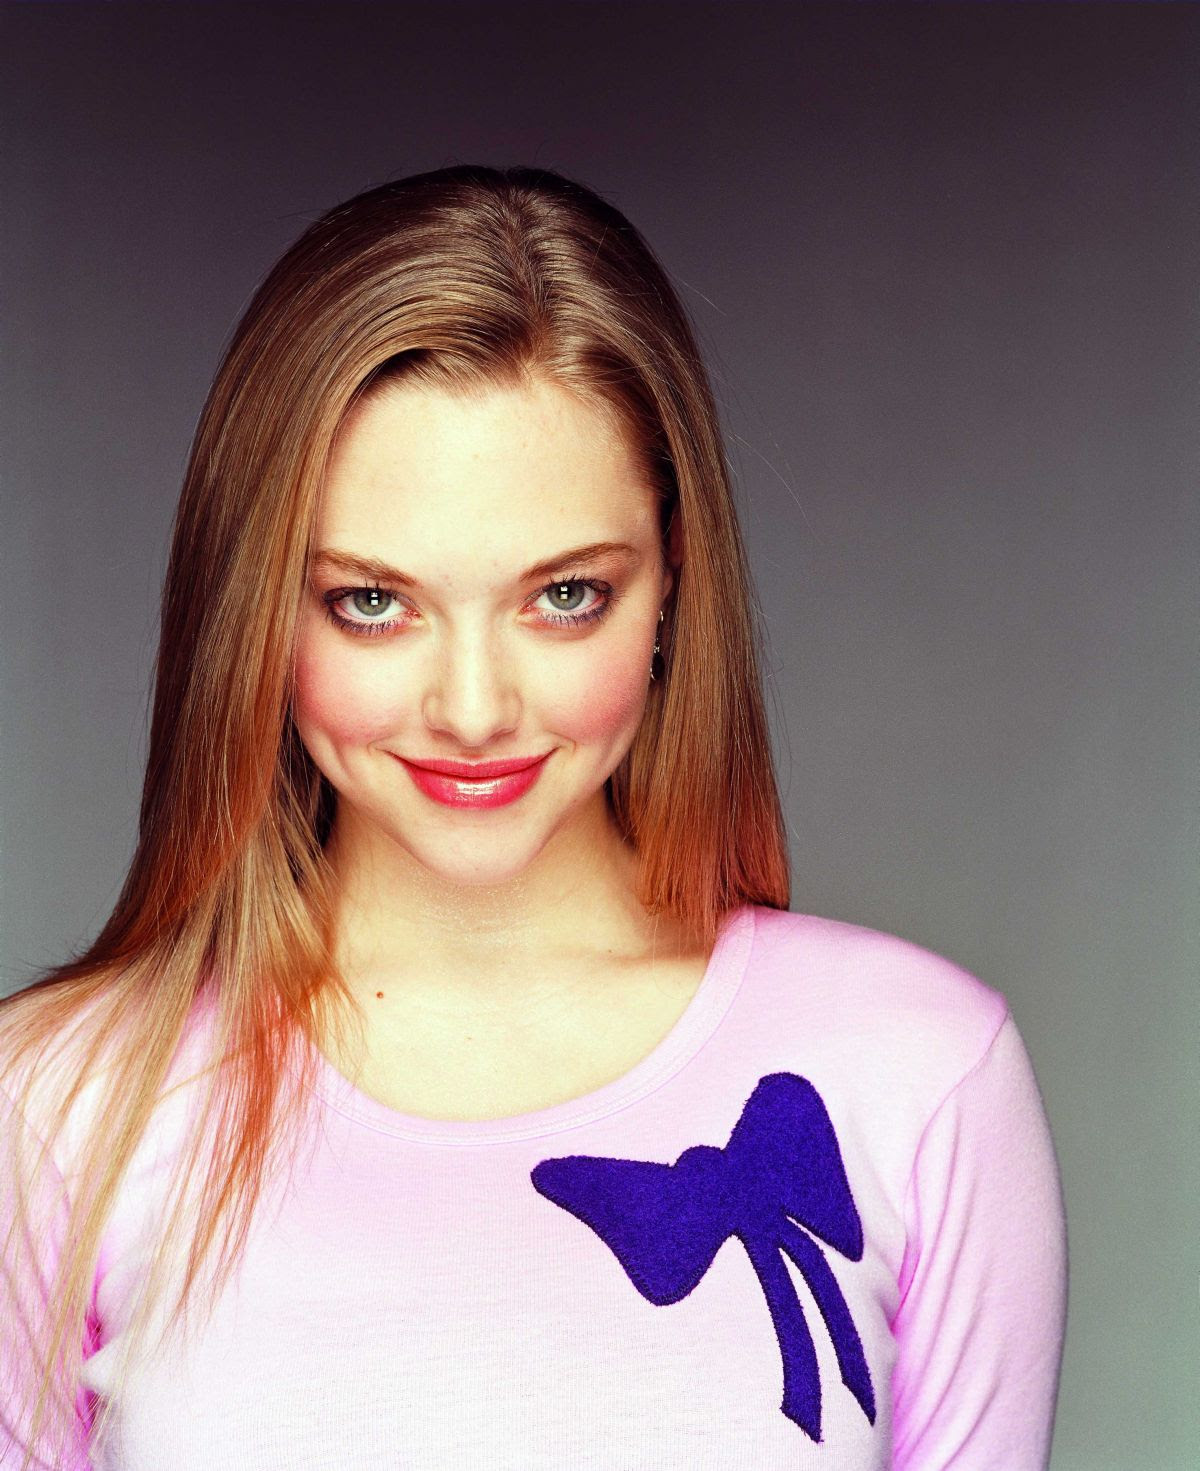 AMANDA SEYFRIED - Mean Girls Promos